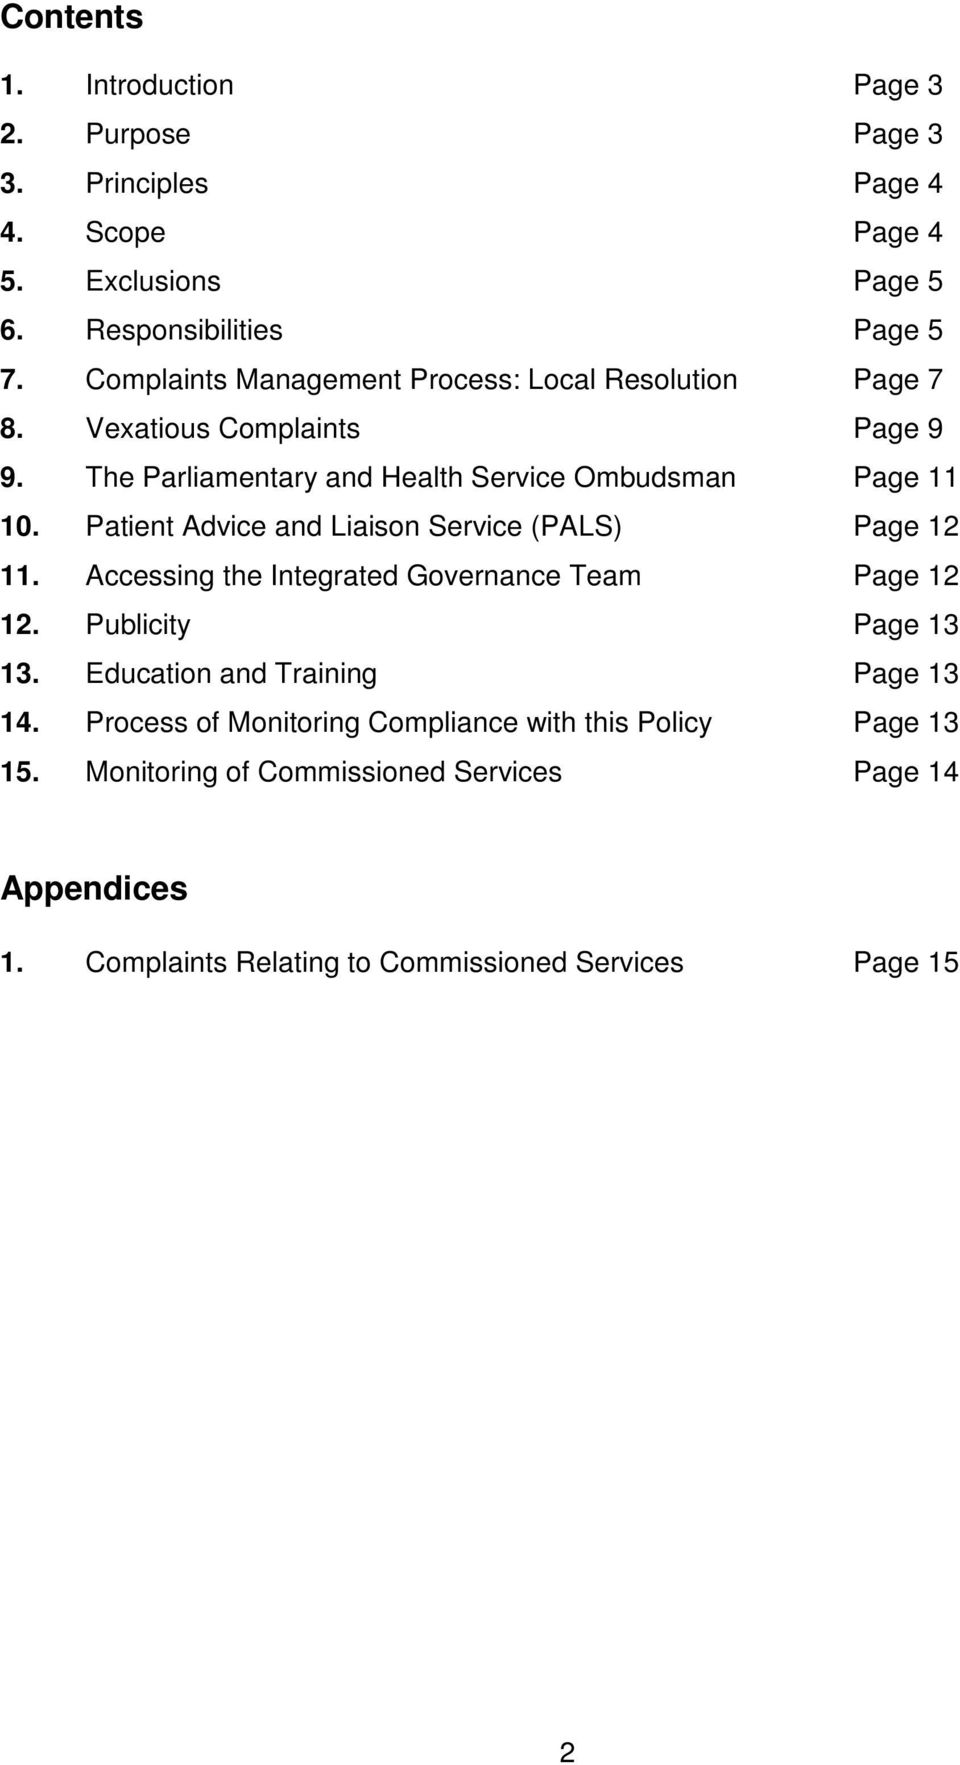 Patient Advice and Liaison Service (PALS) Page 12 11. Accessing the Integrated Governance Team Page 12 12. Publicity Page 13 13.